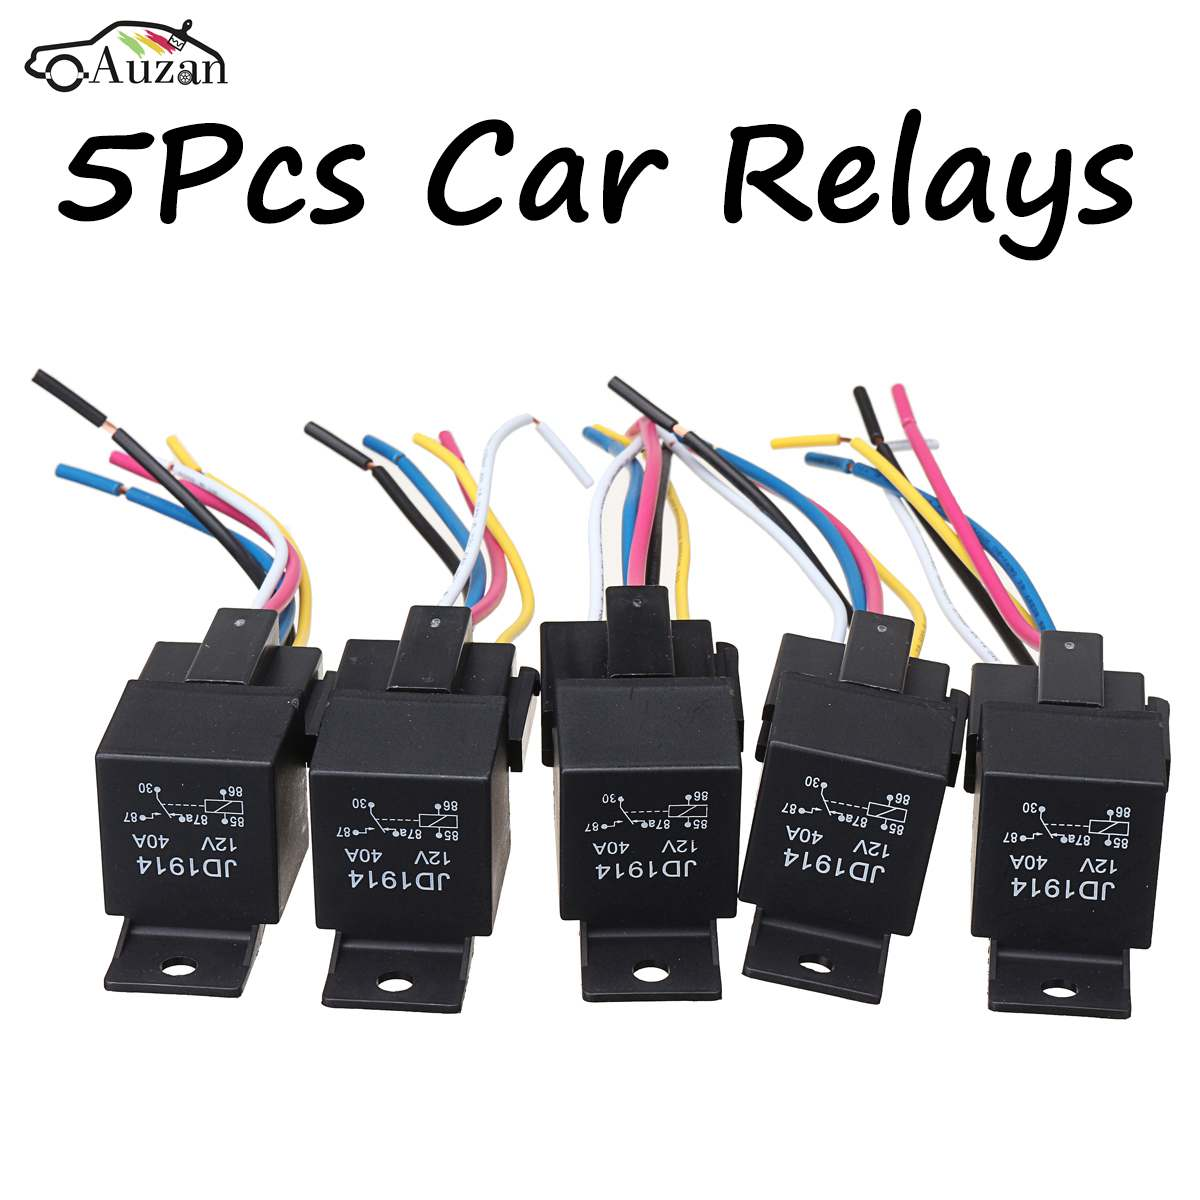 5Pcs Car SPDT Automotive font b Relay b font DC font b 12V b font 5 krp relay 8 pin wiring diagram gandul 45 77 79 119 krpa-11dg-24 wiring diagram at suagrazia.org